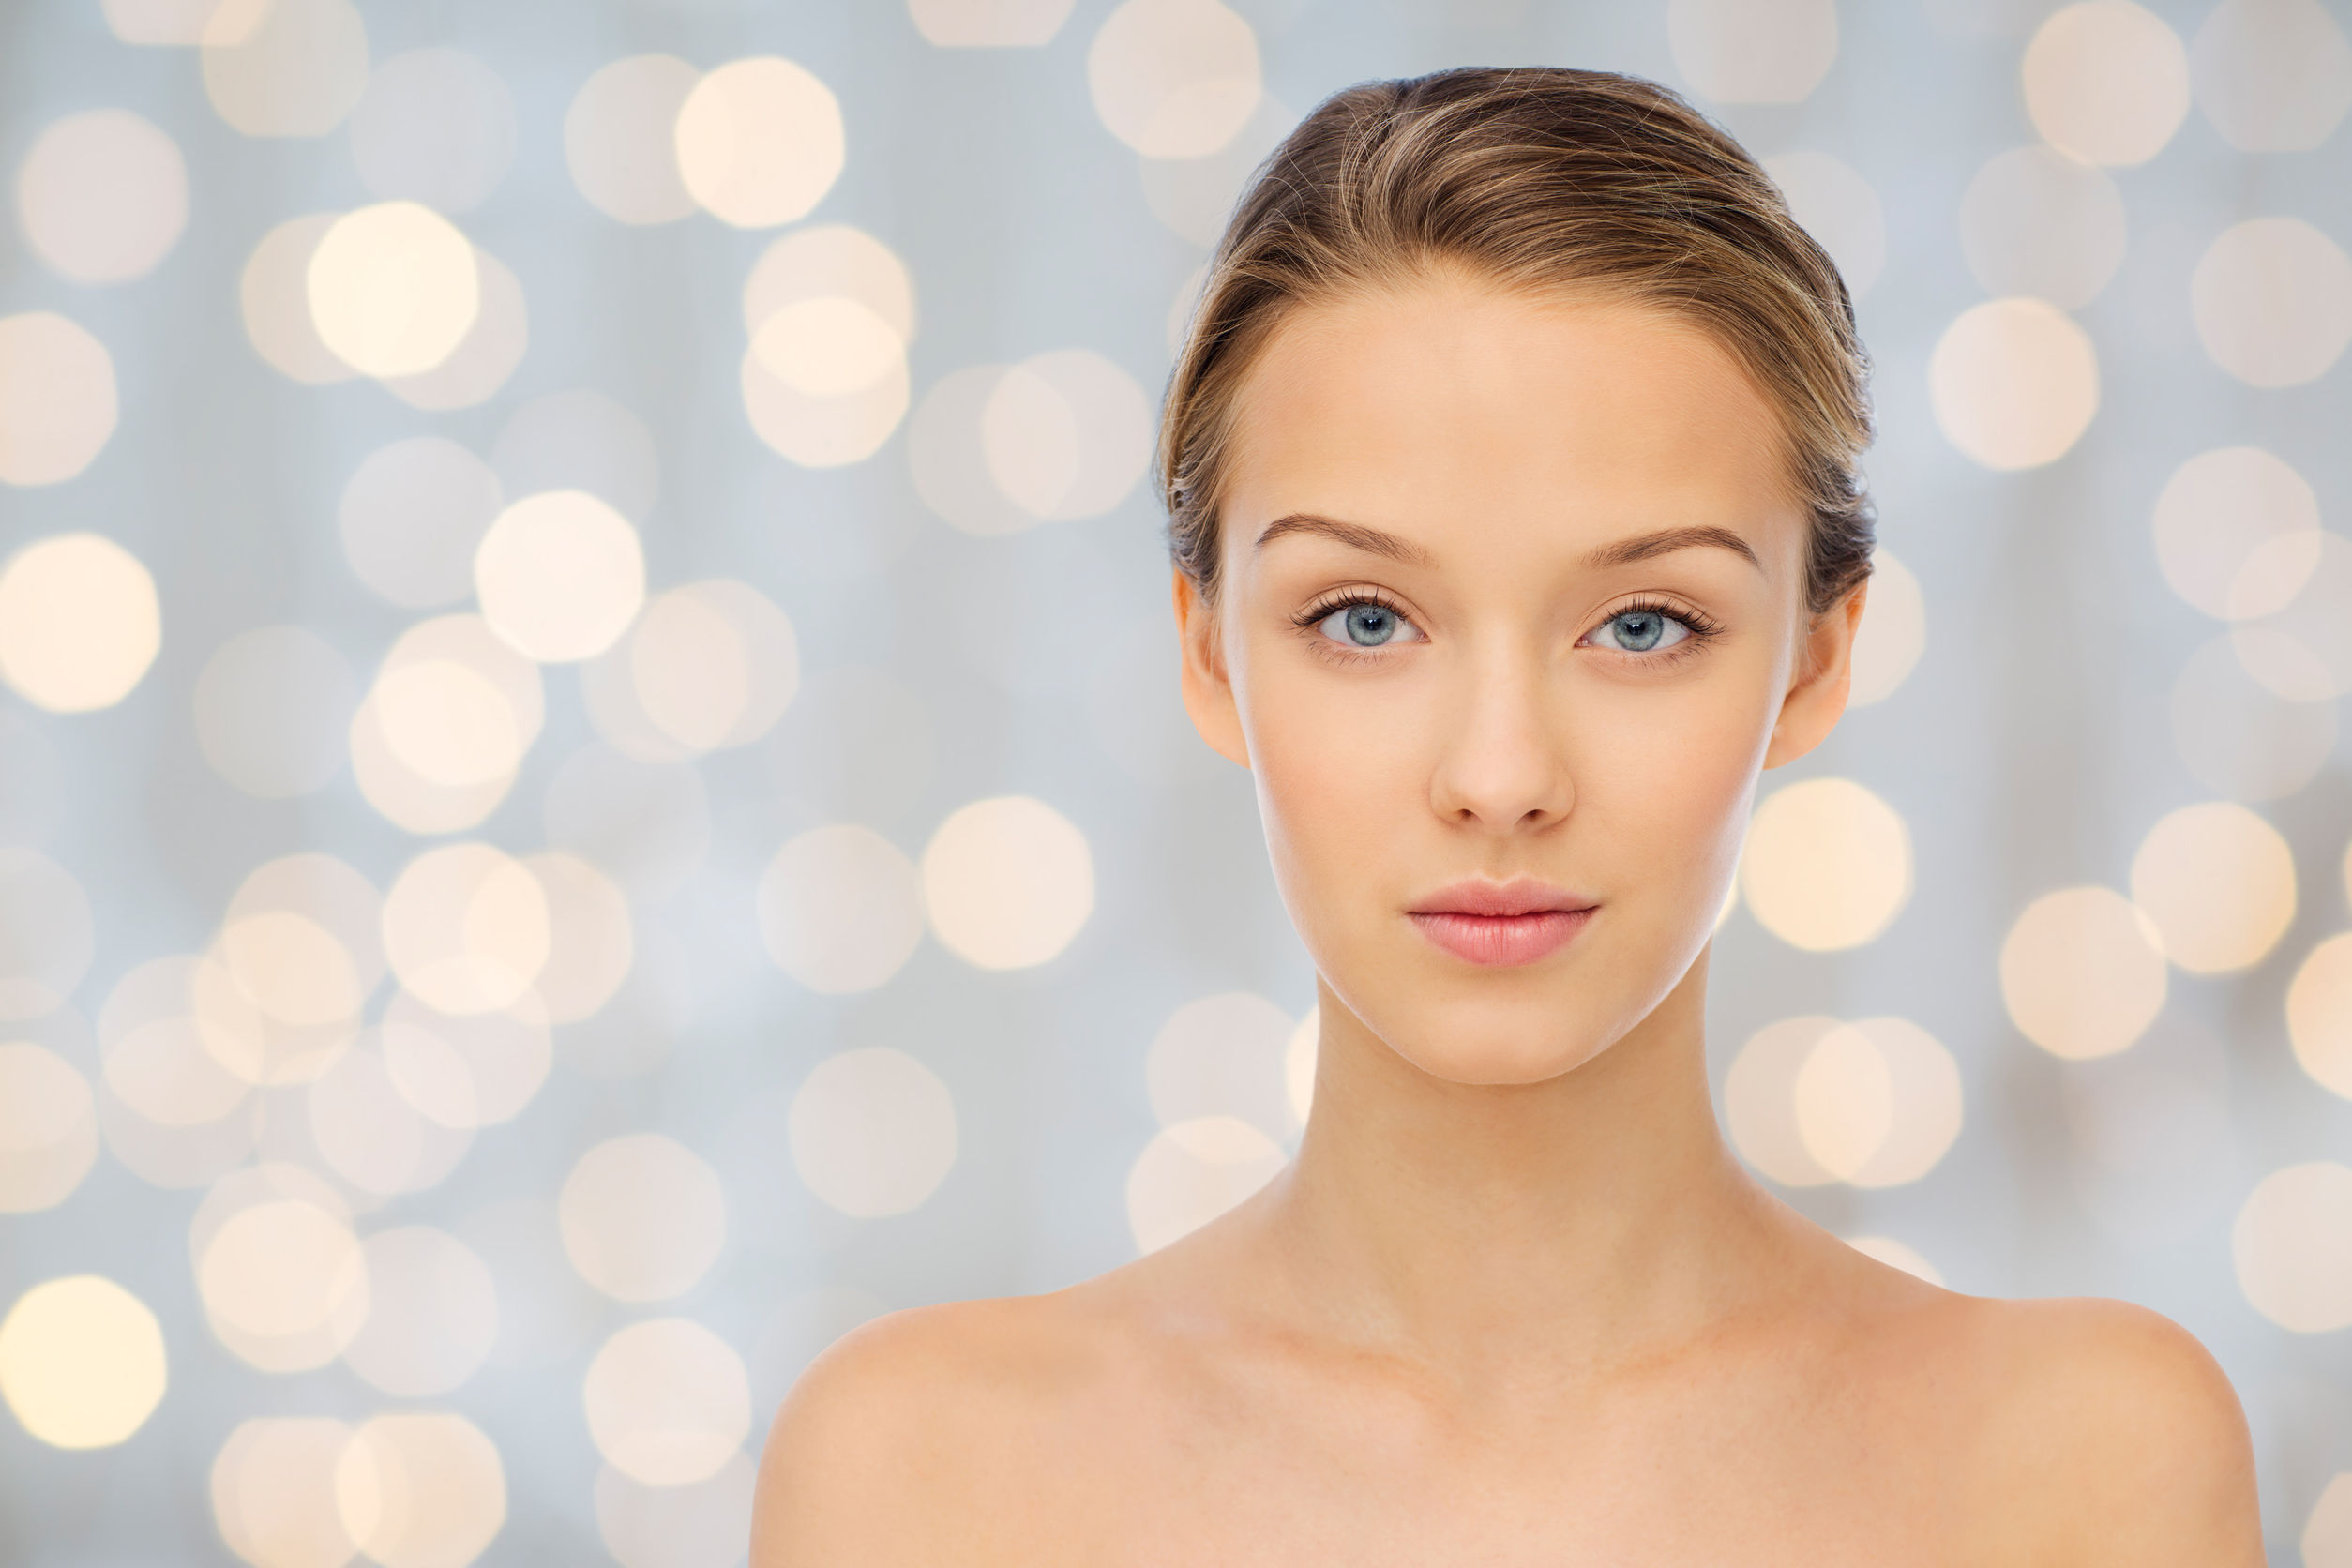 51385373 - beauty, people and health concept - young woman face and shoulders over holidays lights background